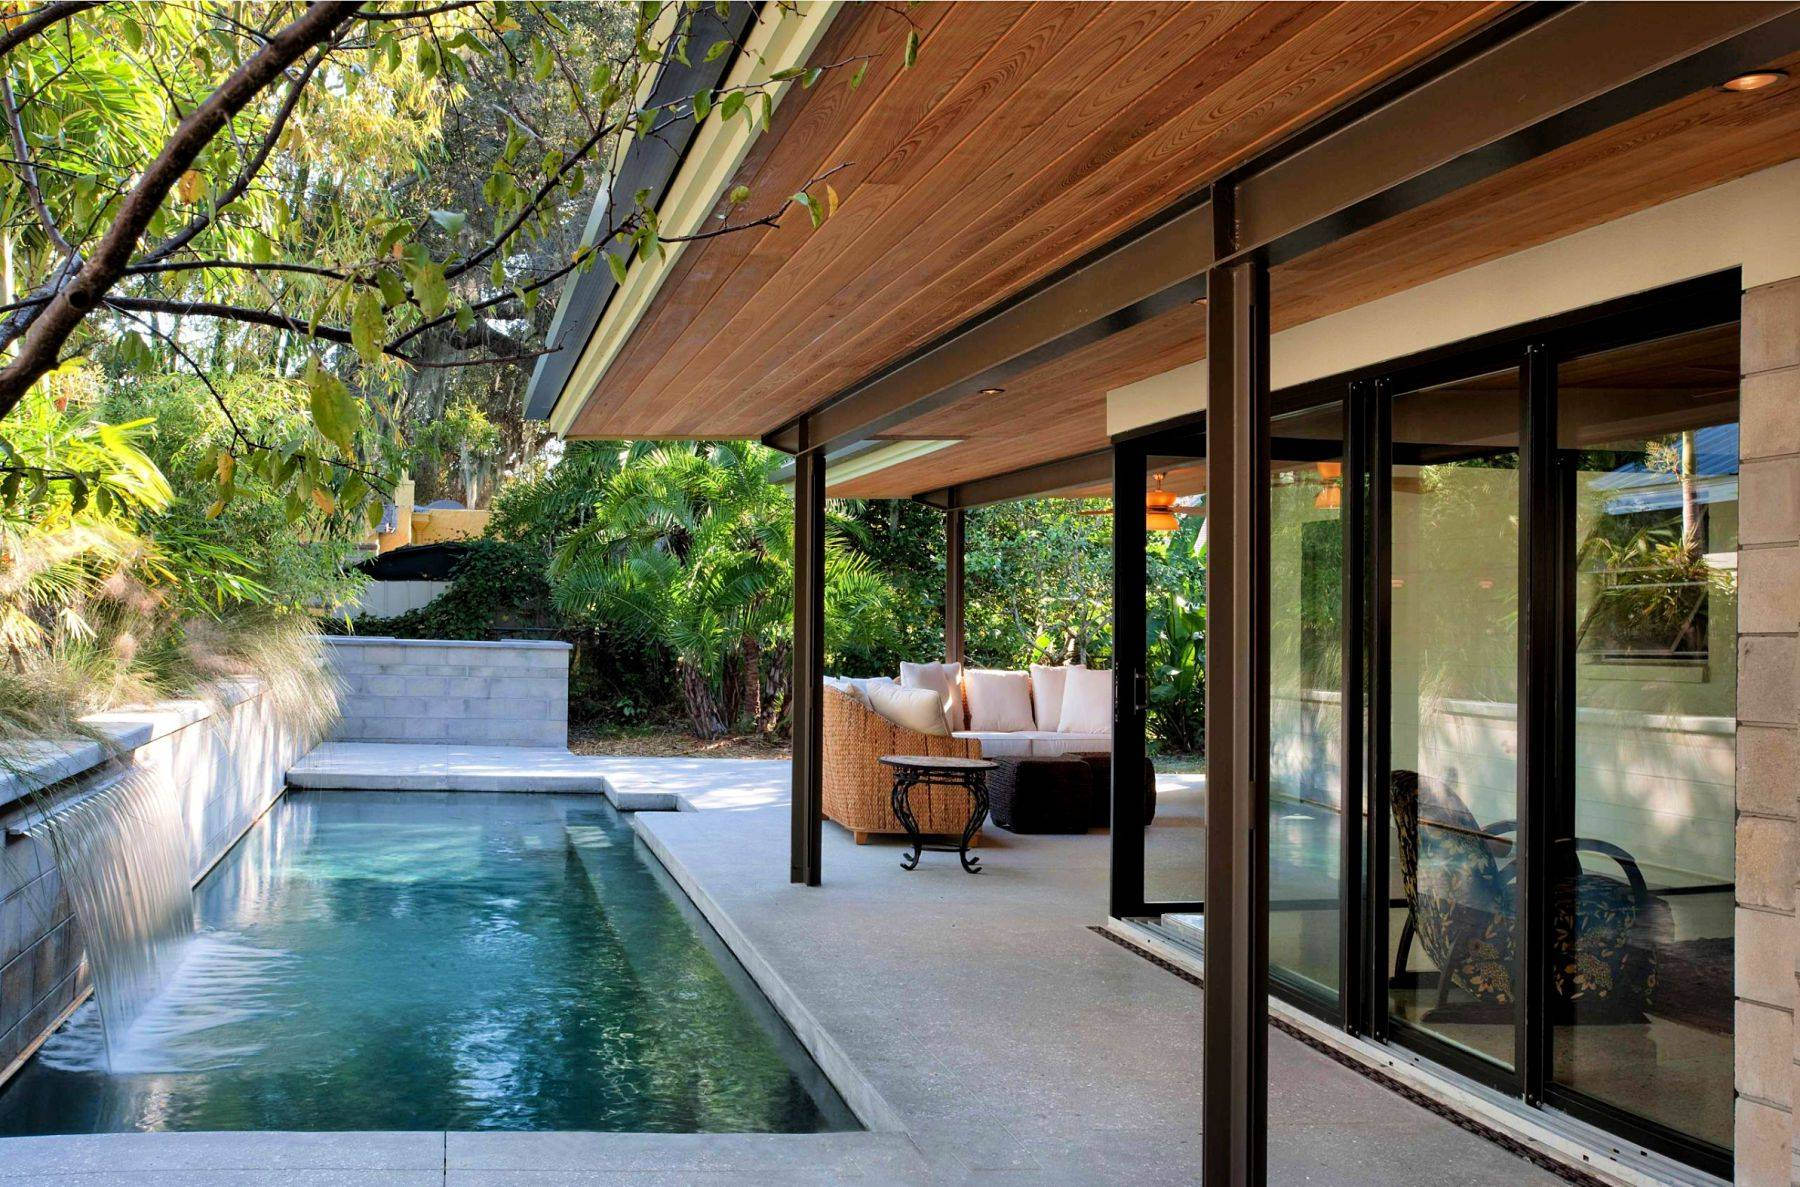 lanai house plans enjoyable inspiration ideas architectures decorating likable small swimming pools big